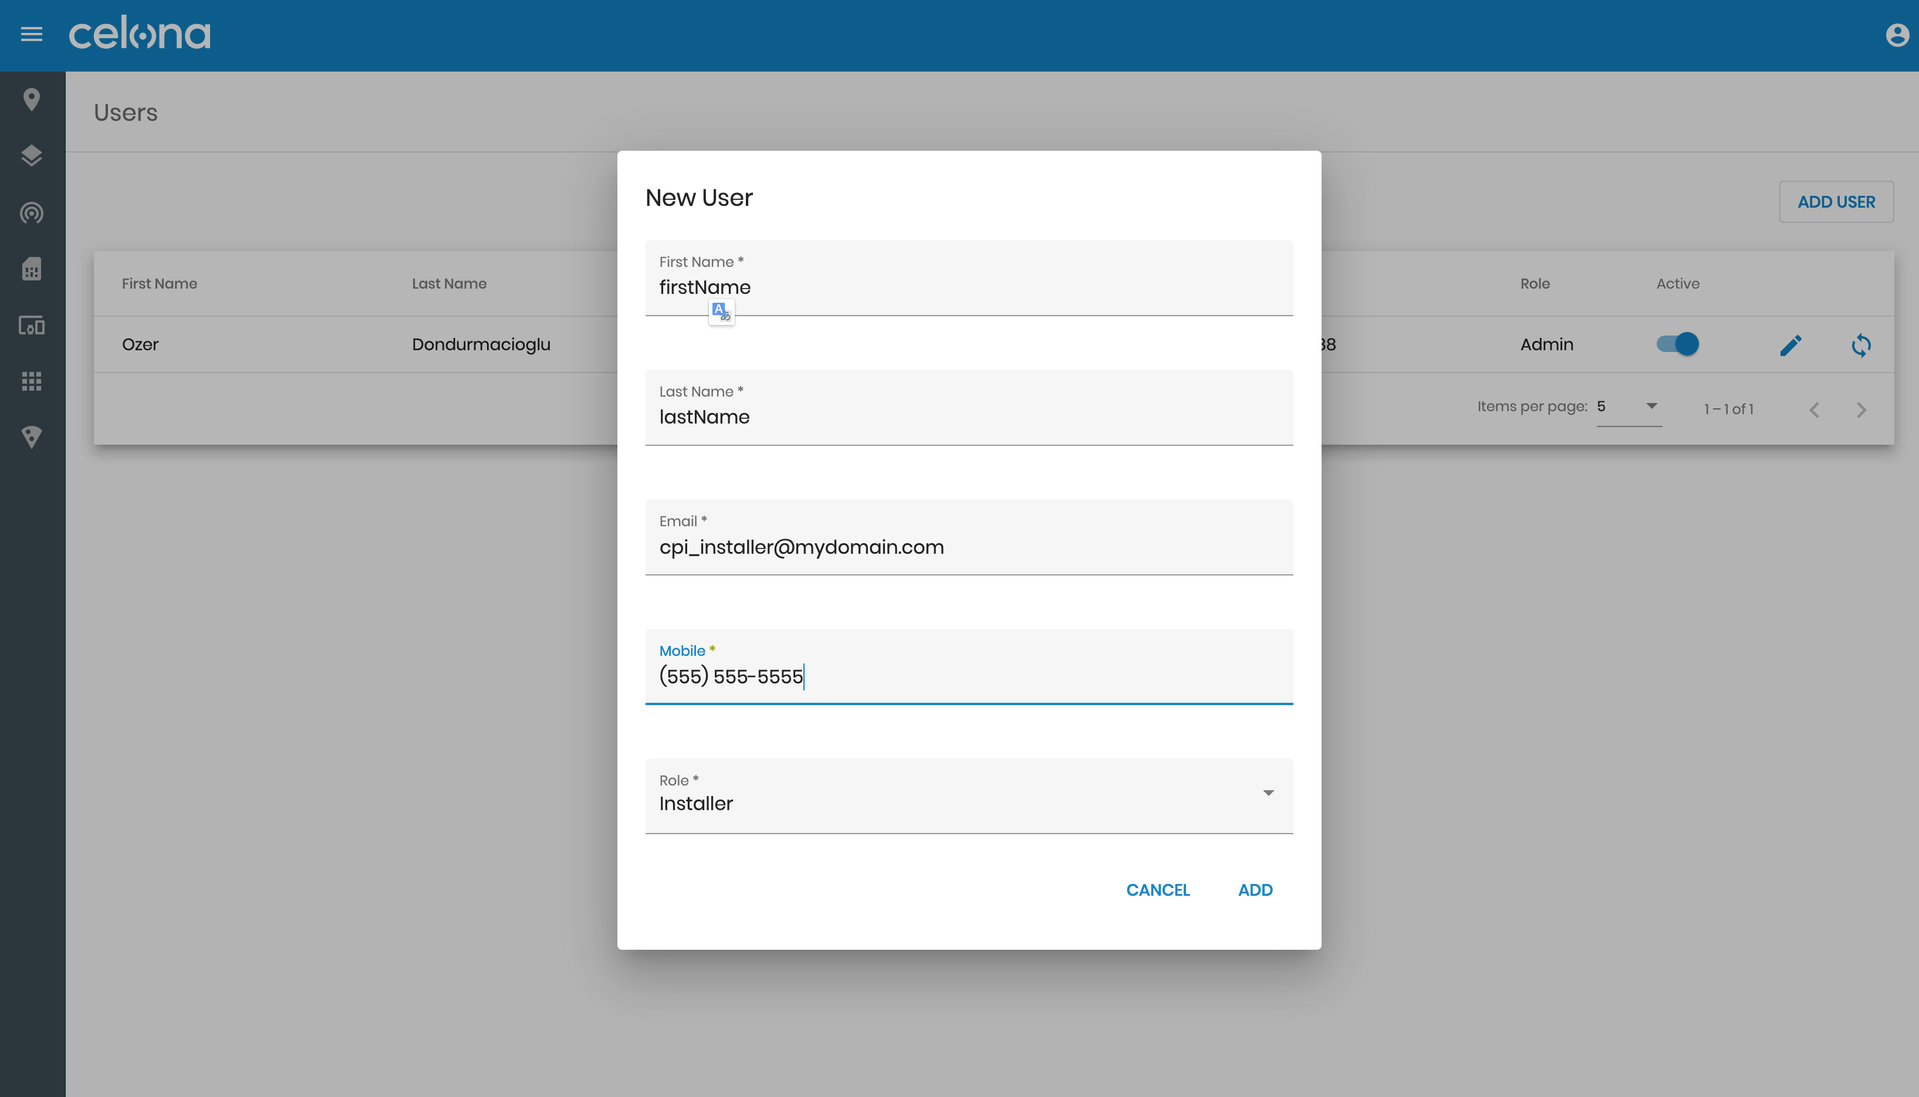 Adding a new user within the Celona Orchestrator